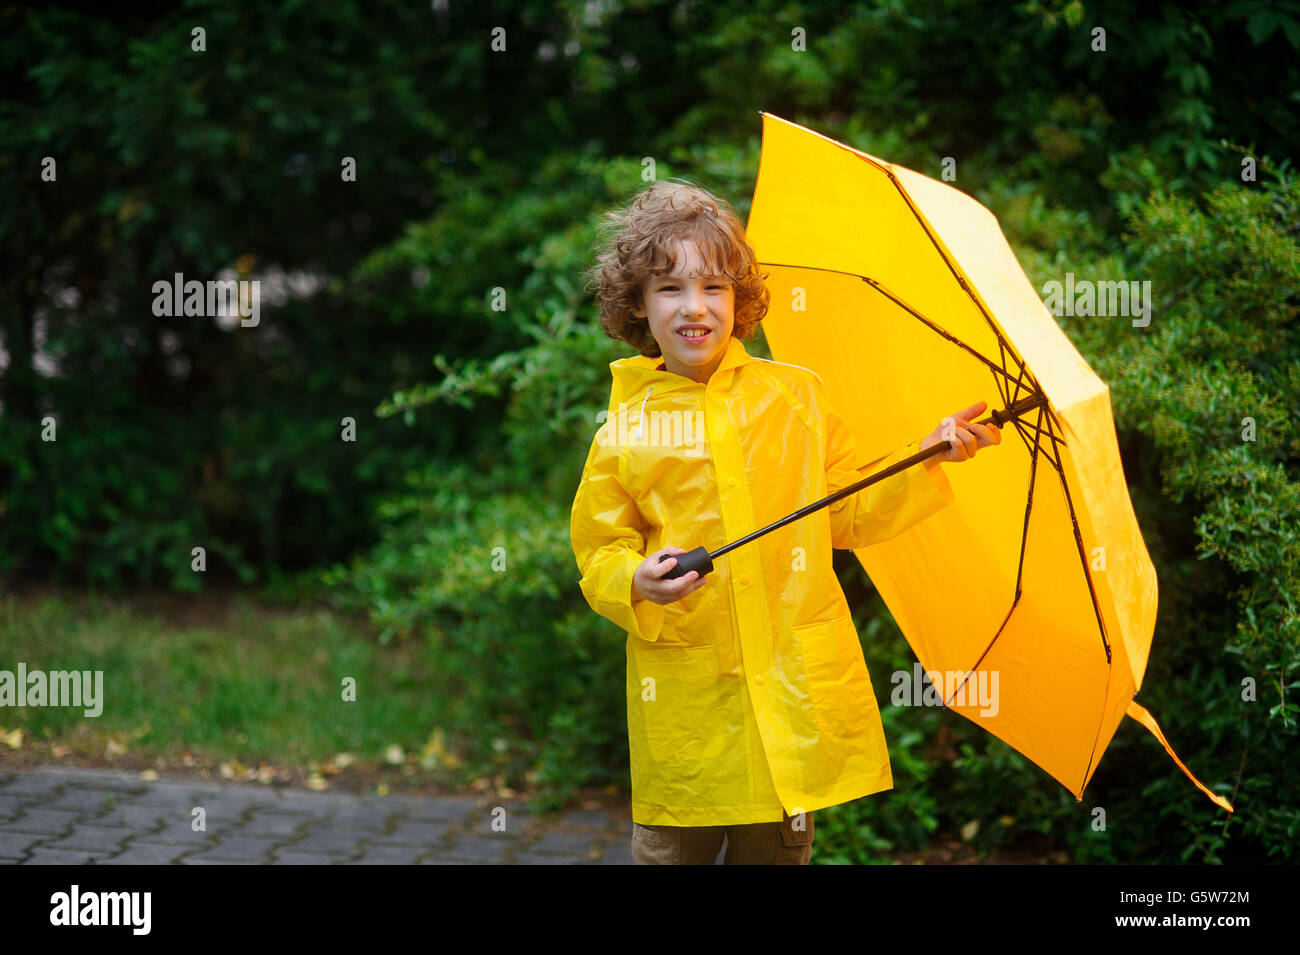 The boy in a raincoat with an umbrella in hands. The cute little fellow dressed in a yellow raincoat holds a yellow - Stock Image